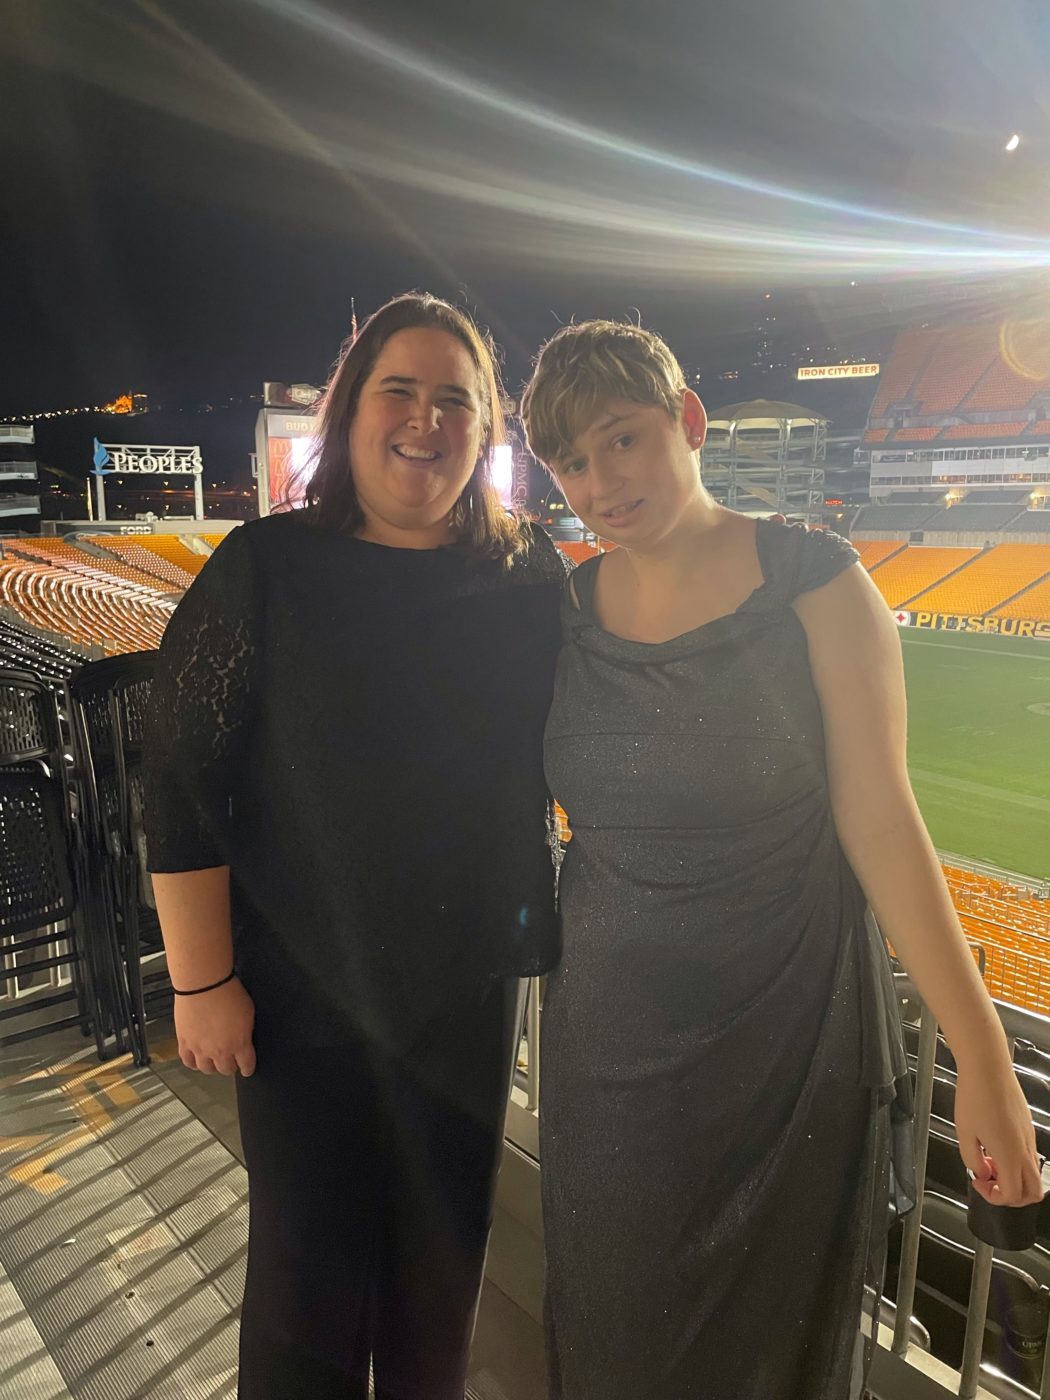 Lindsey Daniel & Katelyn Mitchell together on October 12th, 2021, Community Options hosted its Gala celebrating Celebrating Extraordinary Measures. The Gala took place at Heinz Field, 100 Art Rooney Ave., Pittsburgh, PA 15212.